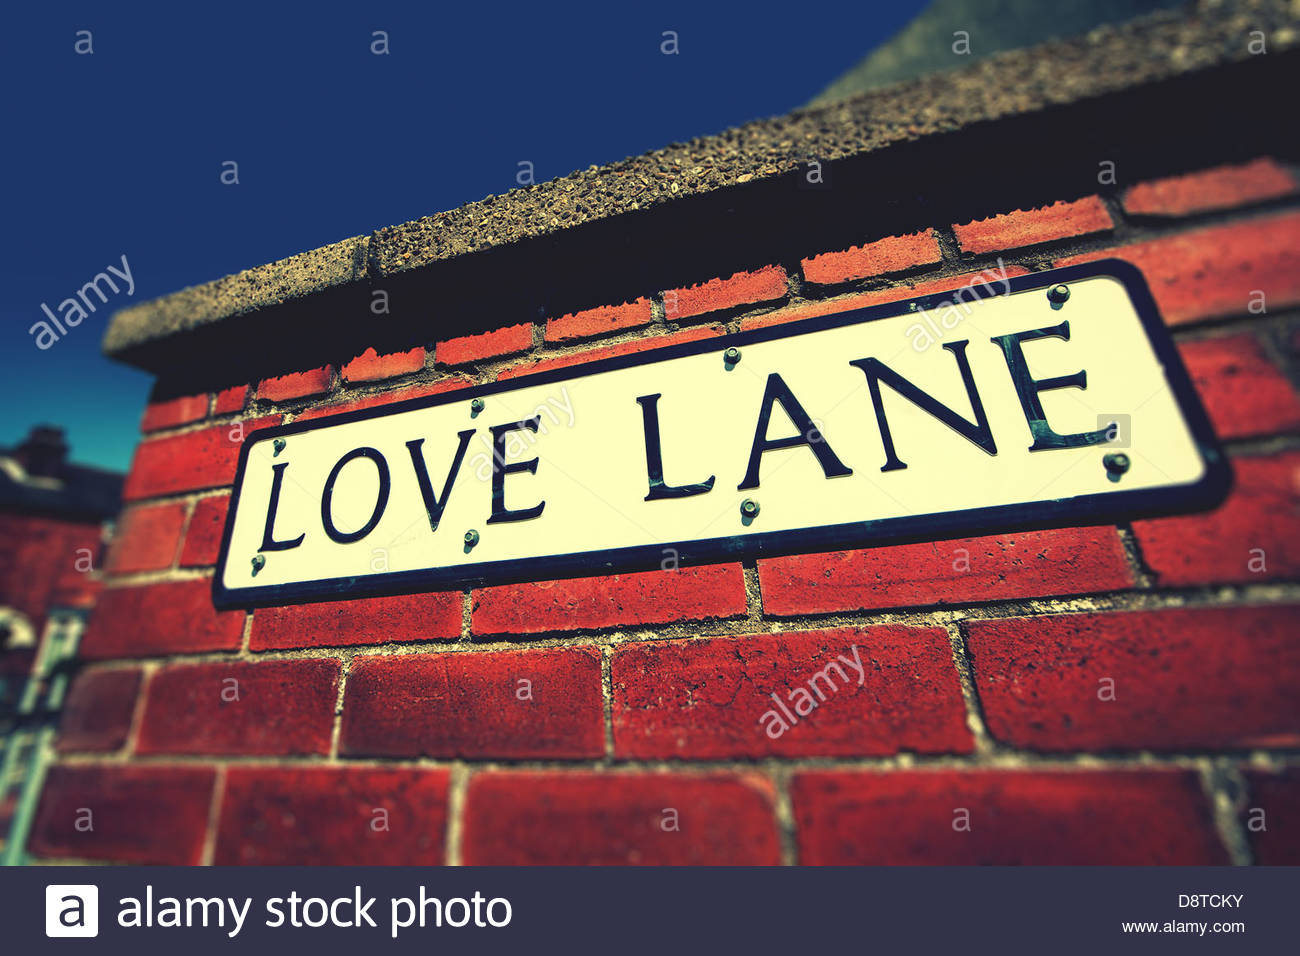 Love Lane sign on wall Photo Stock